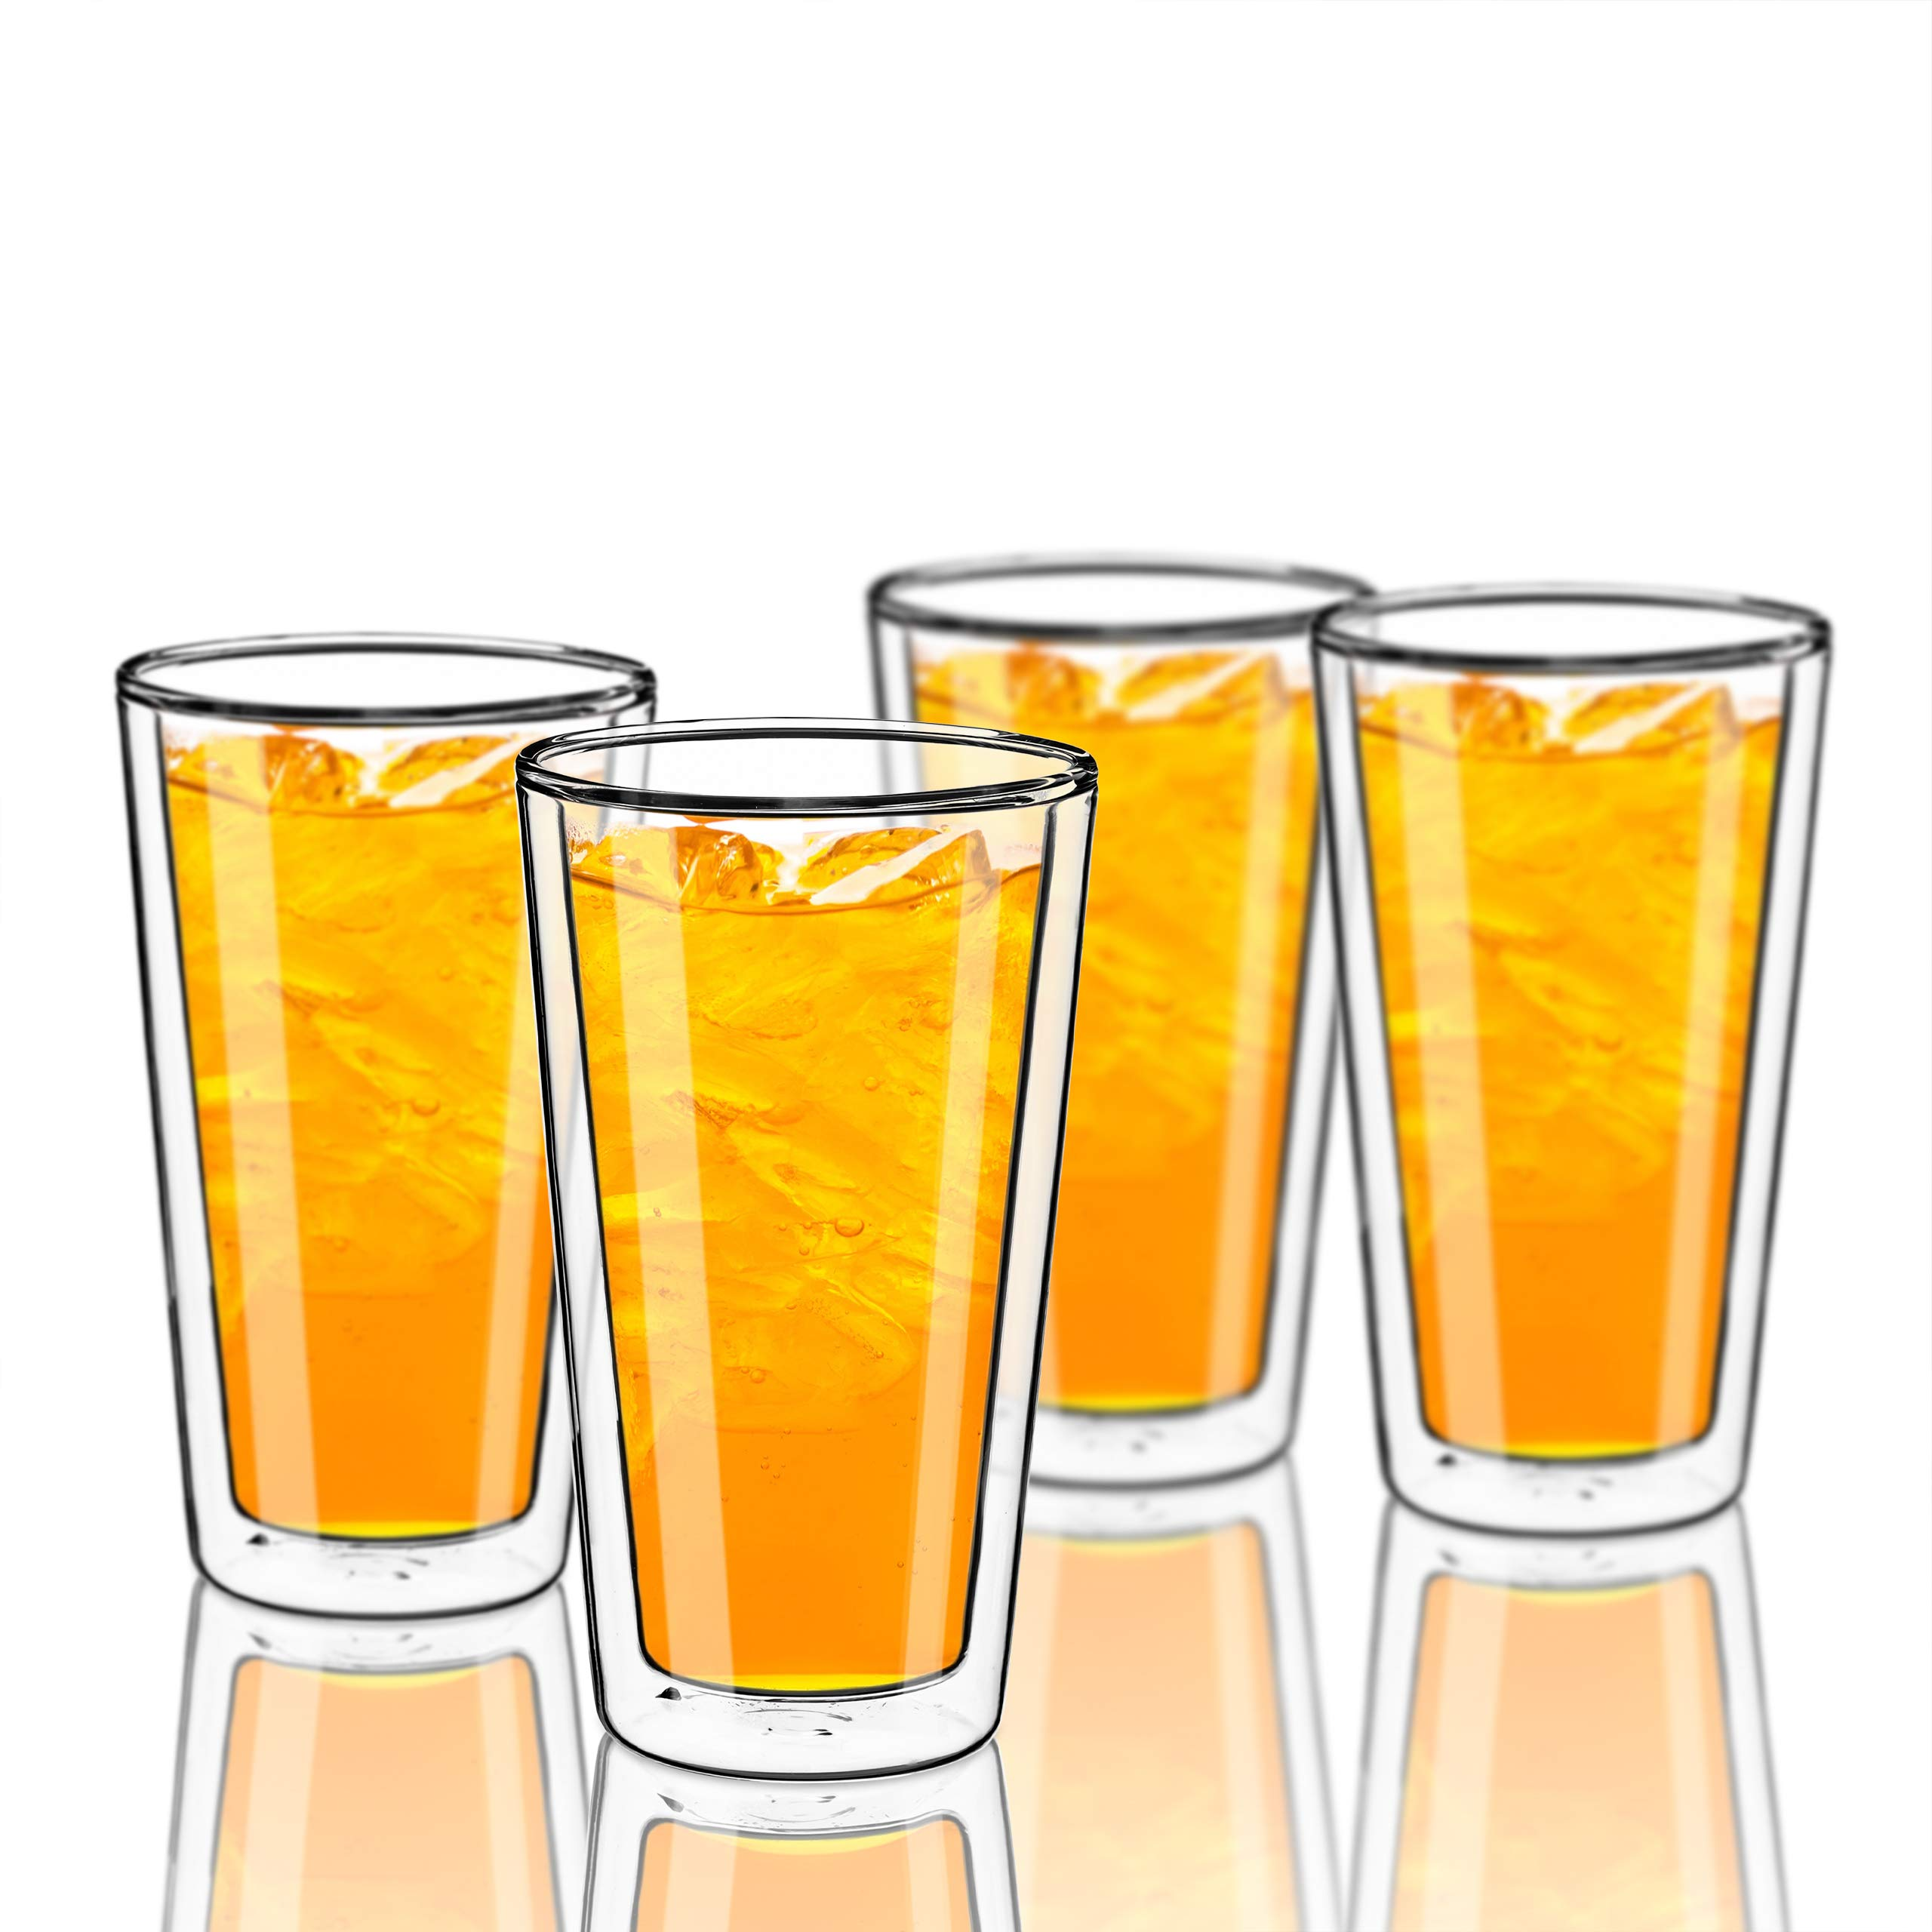 Style Setter Double Wall Tumblers - Set of 4 15.2oz Insulated Home Barware Glasses for Cold Drinks, Cocktails, Coffee, Hot Tea & Other Beverages - Unique Gift Idea for Birthday, Holiday & More